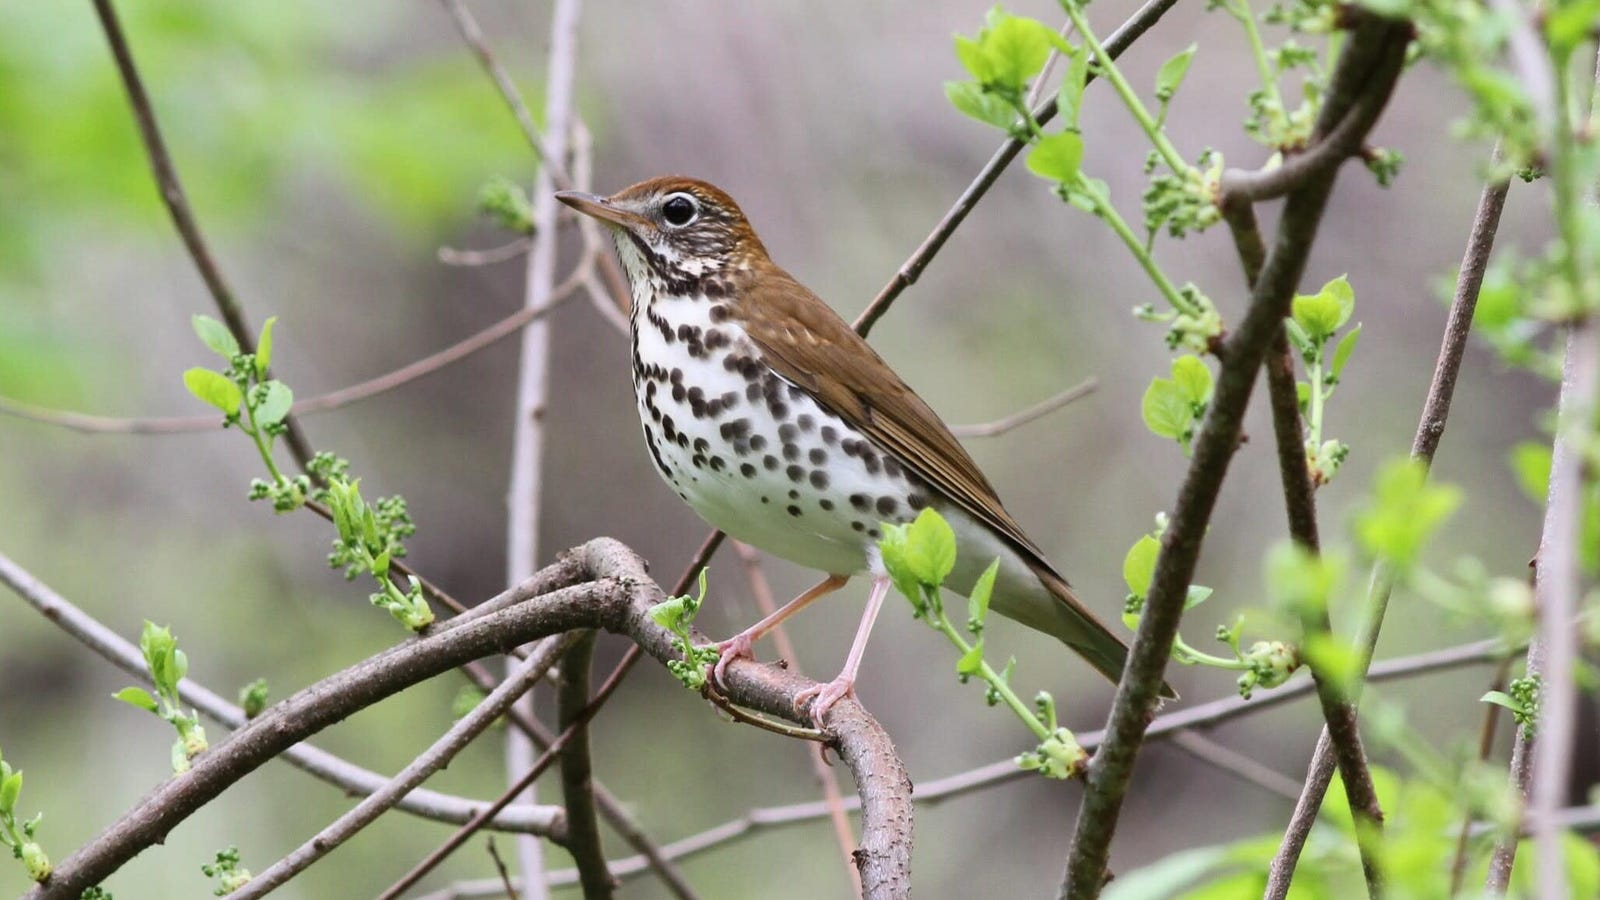 North America Has Lost Almost 30 Percent of Its Birds Since 1970, Upsetting New Study Finds